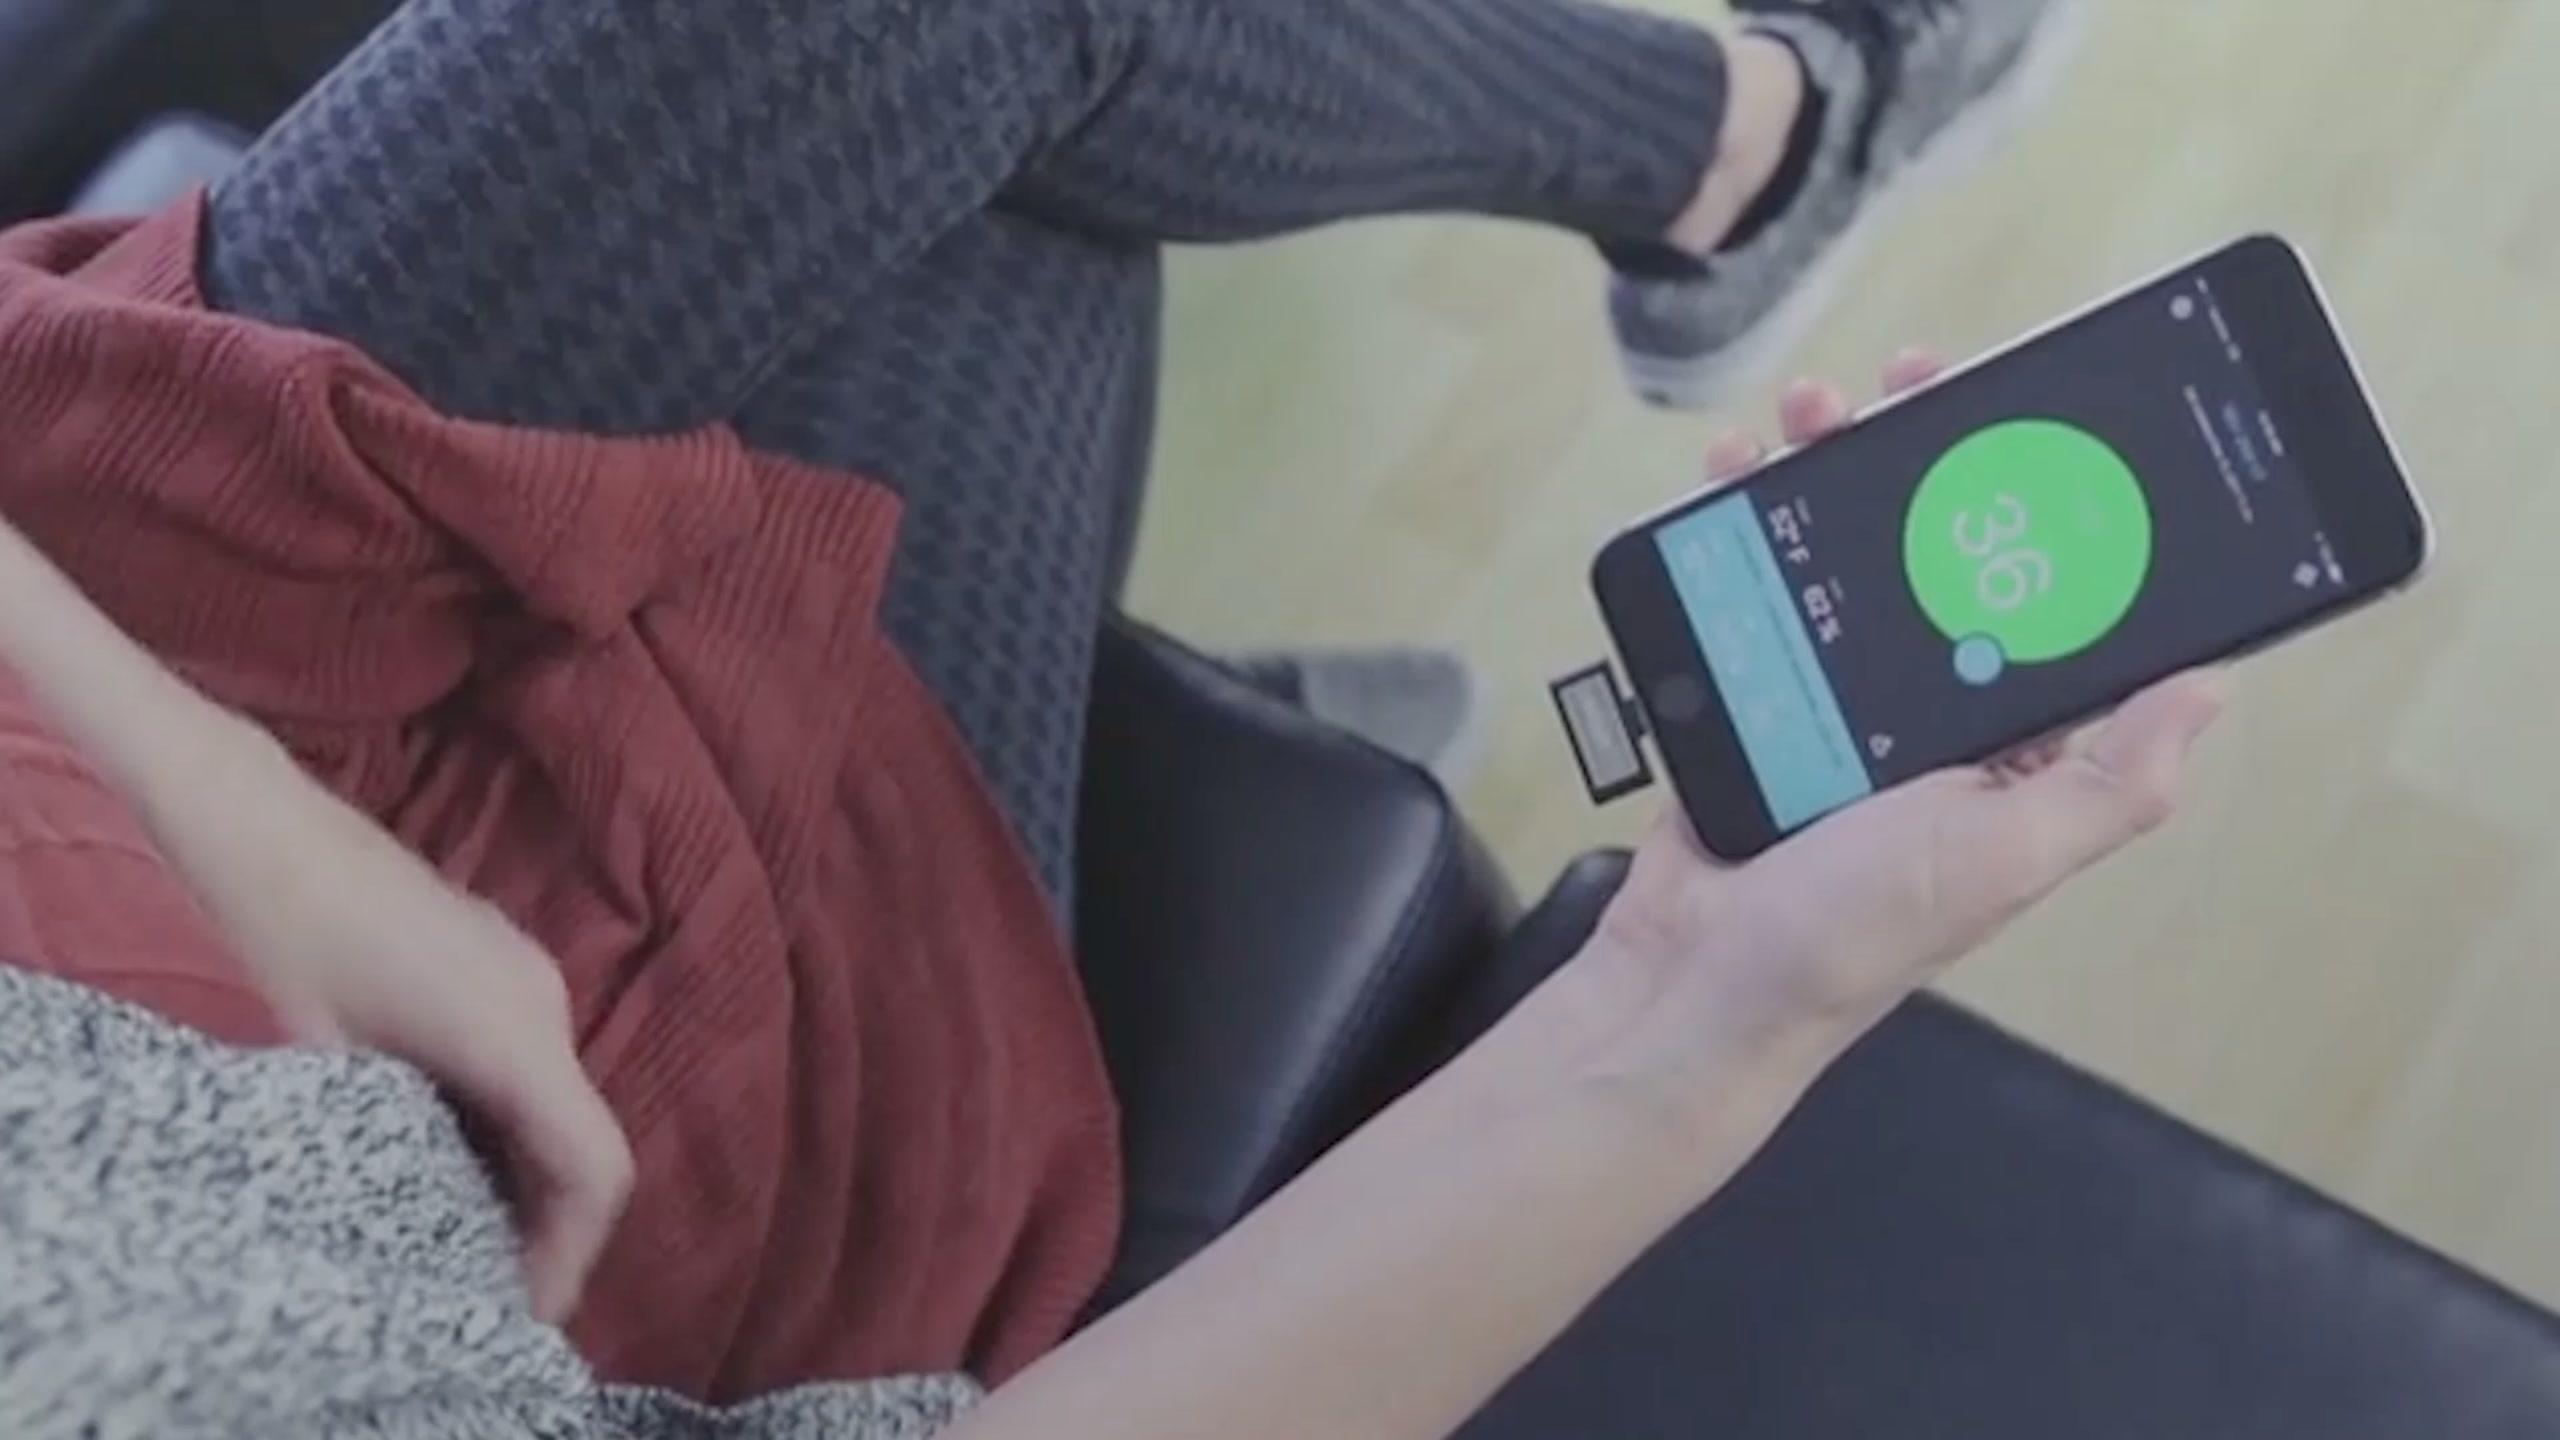 This tiny iPhone gadget can help you detect hazards lurking in the air